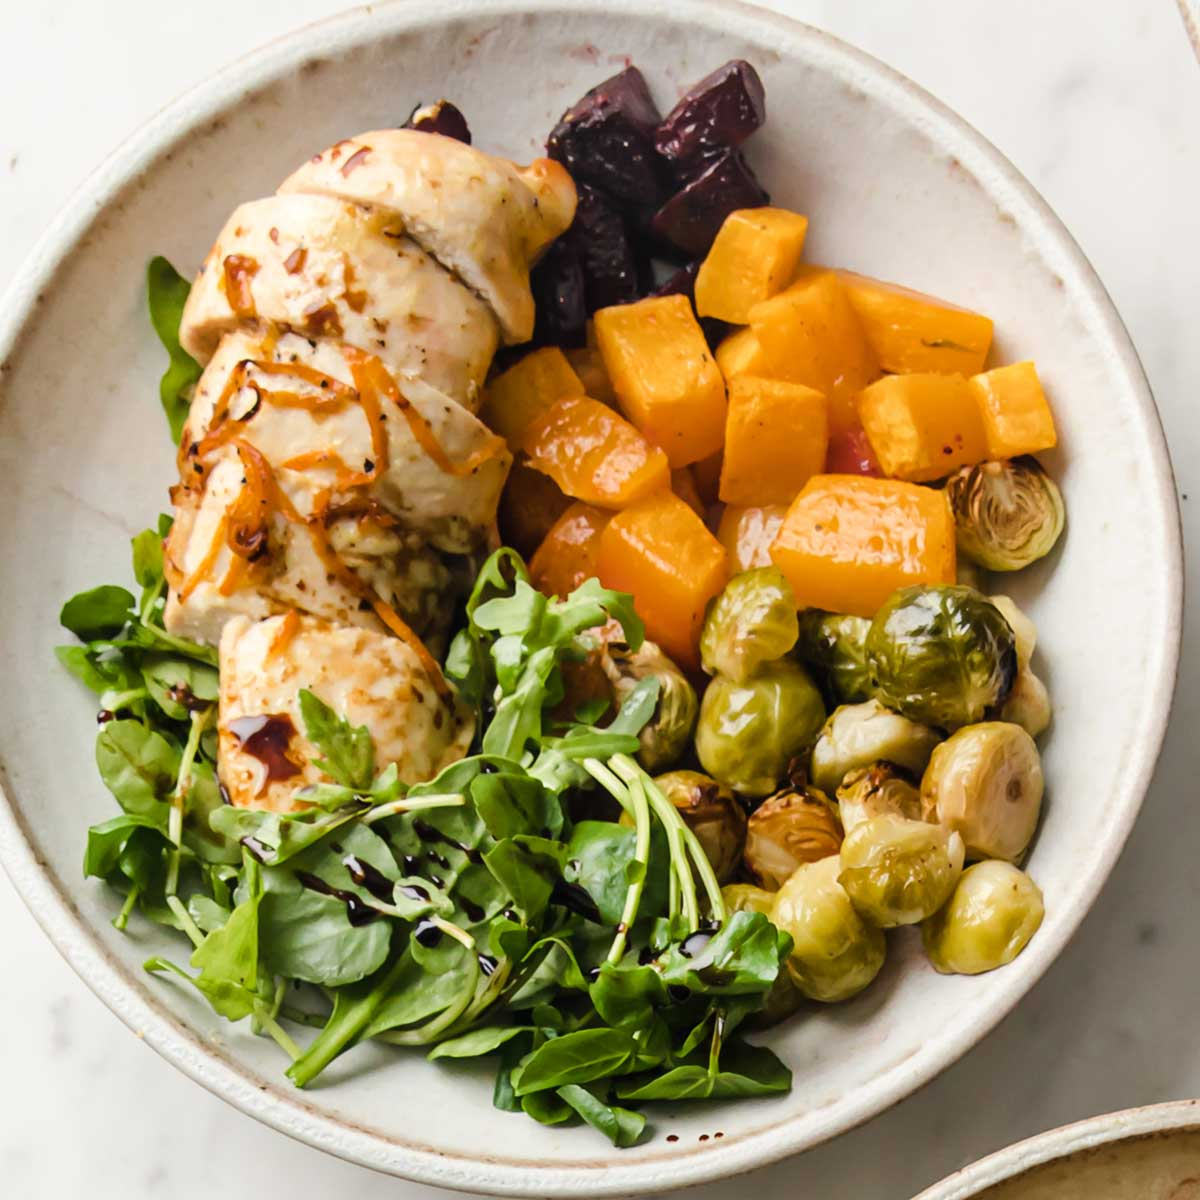 roasted chicken and vegetables on a plate